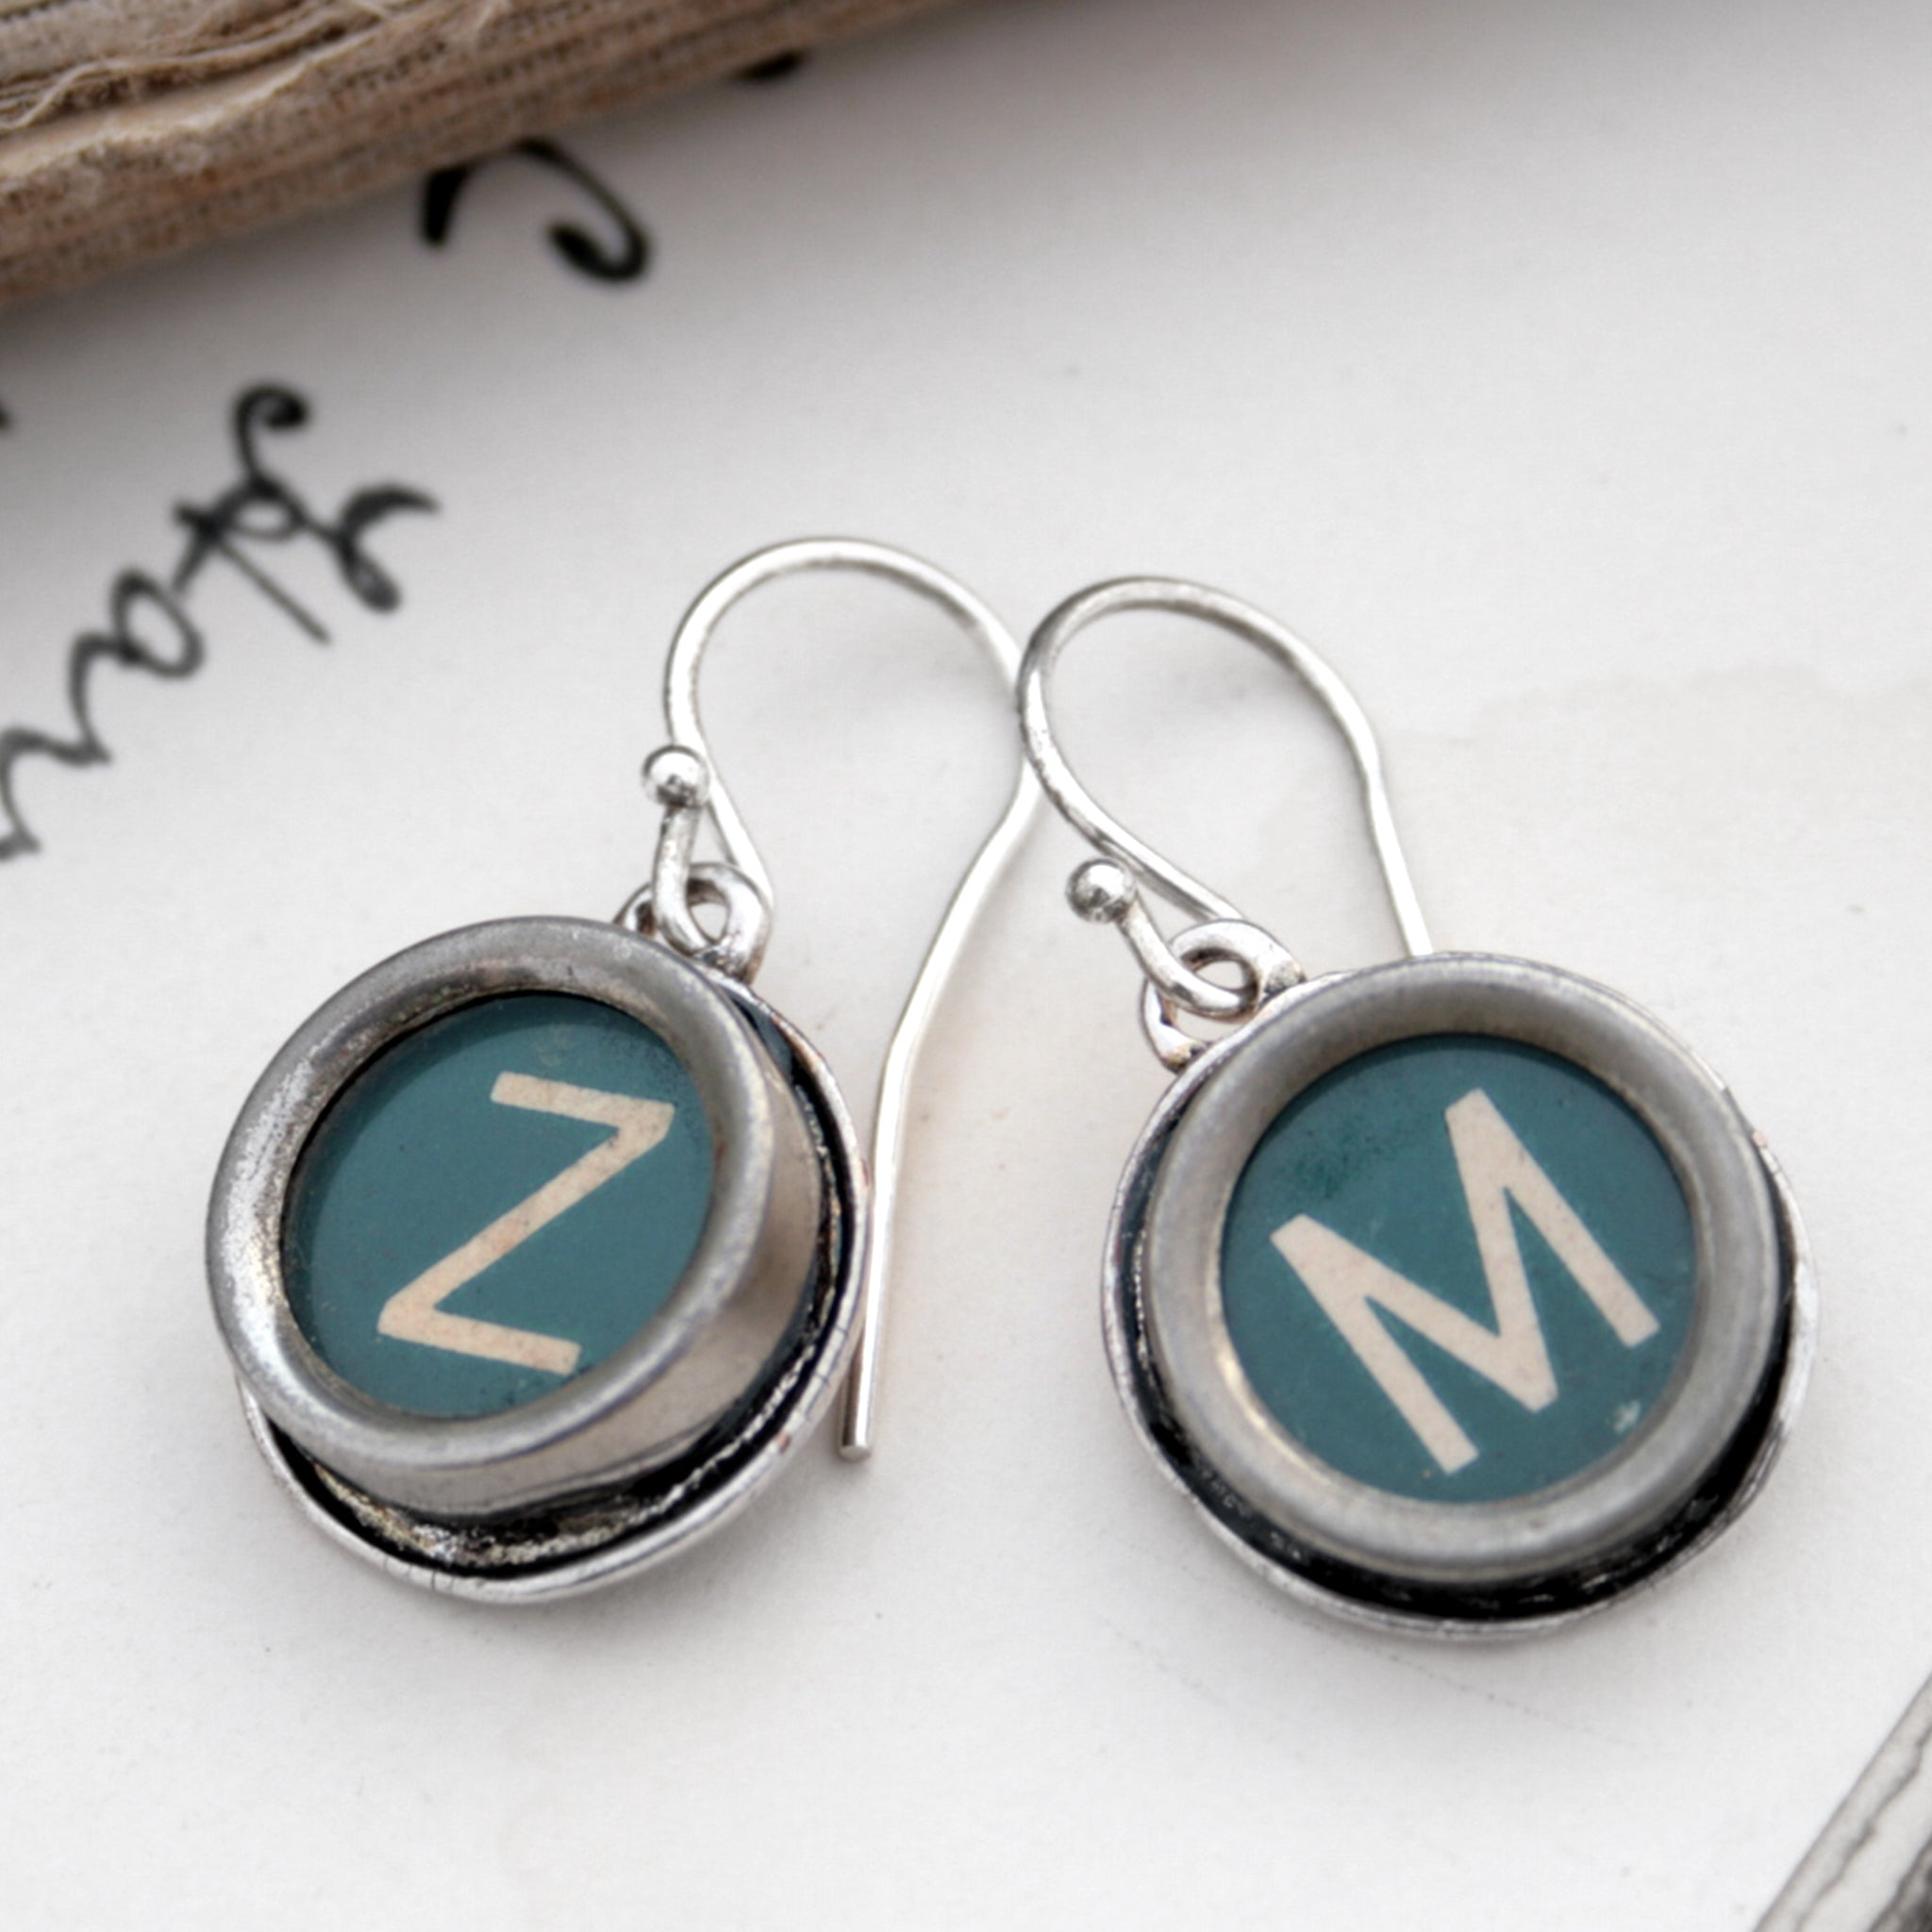 initial earrings made of authentic vintage typewriter keys Z and M in green color